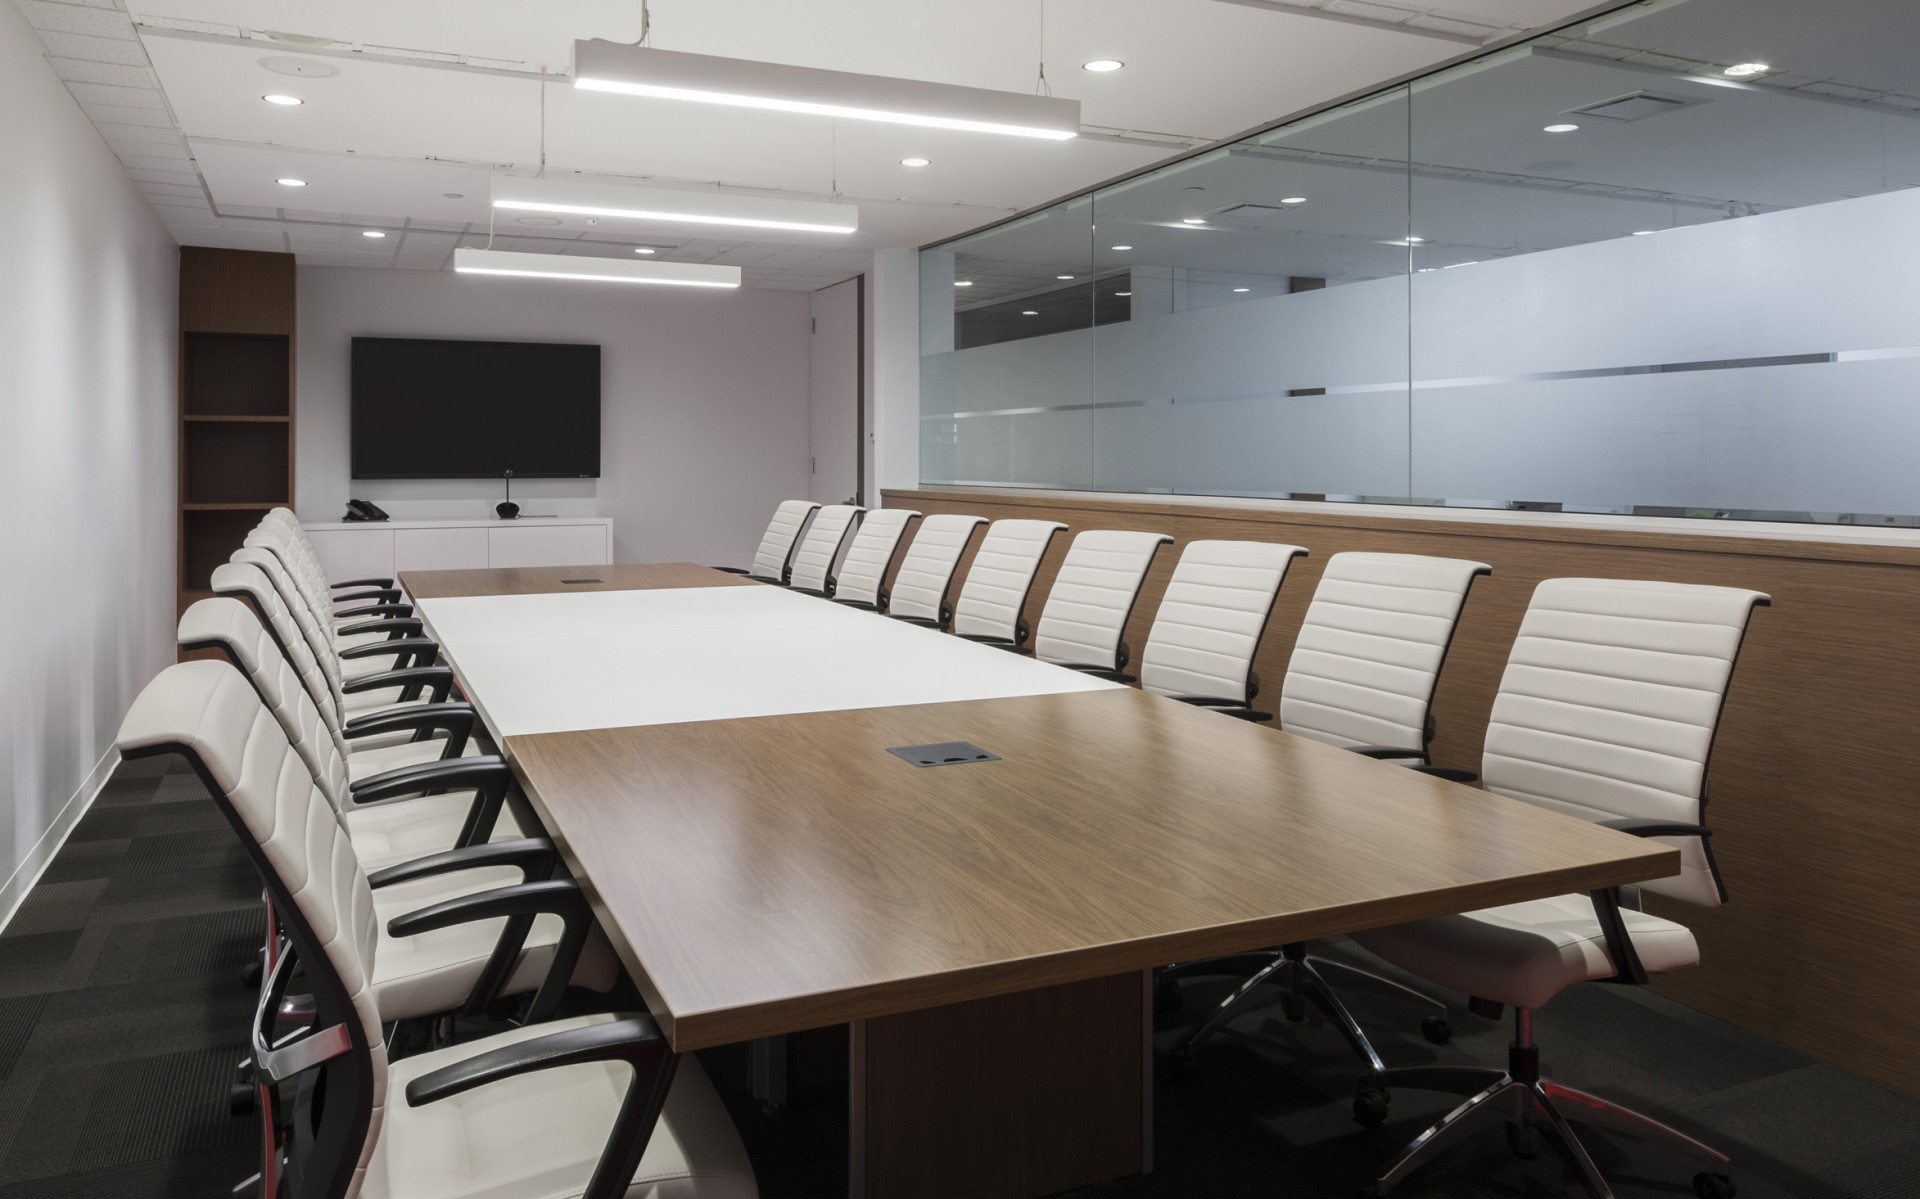 Lumenline Pendants, meanwhile, are used to illuminate the office's meeting spaces.